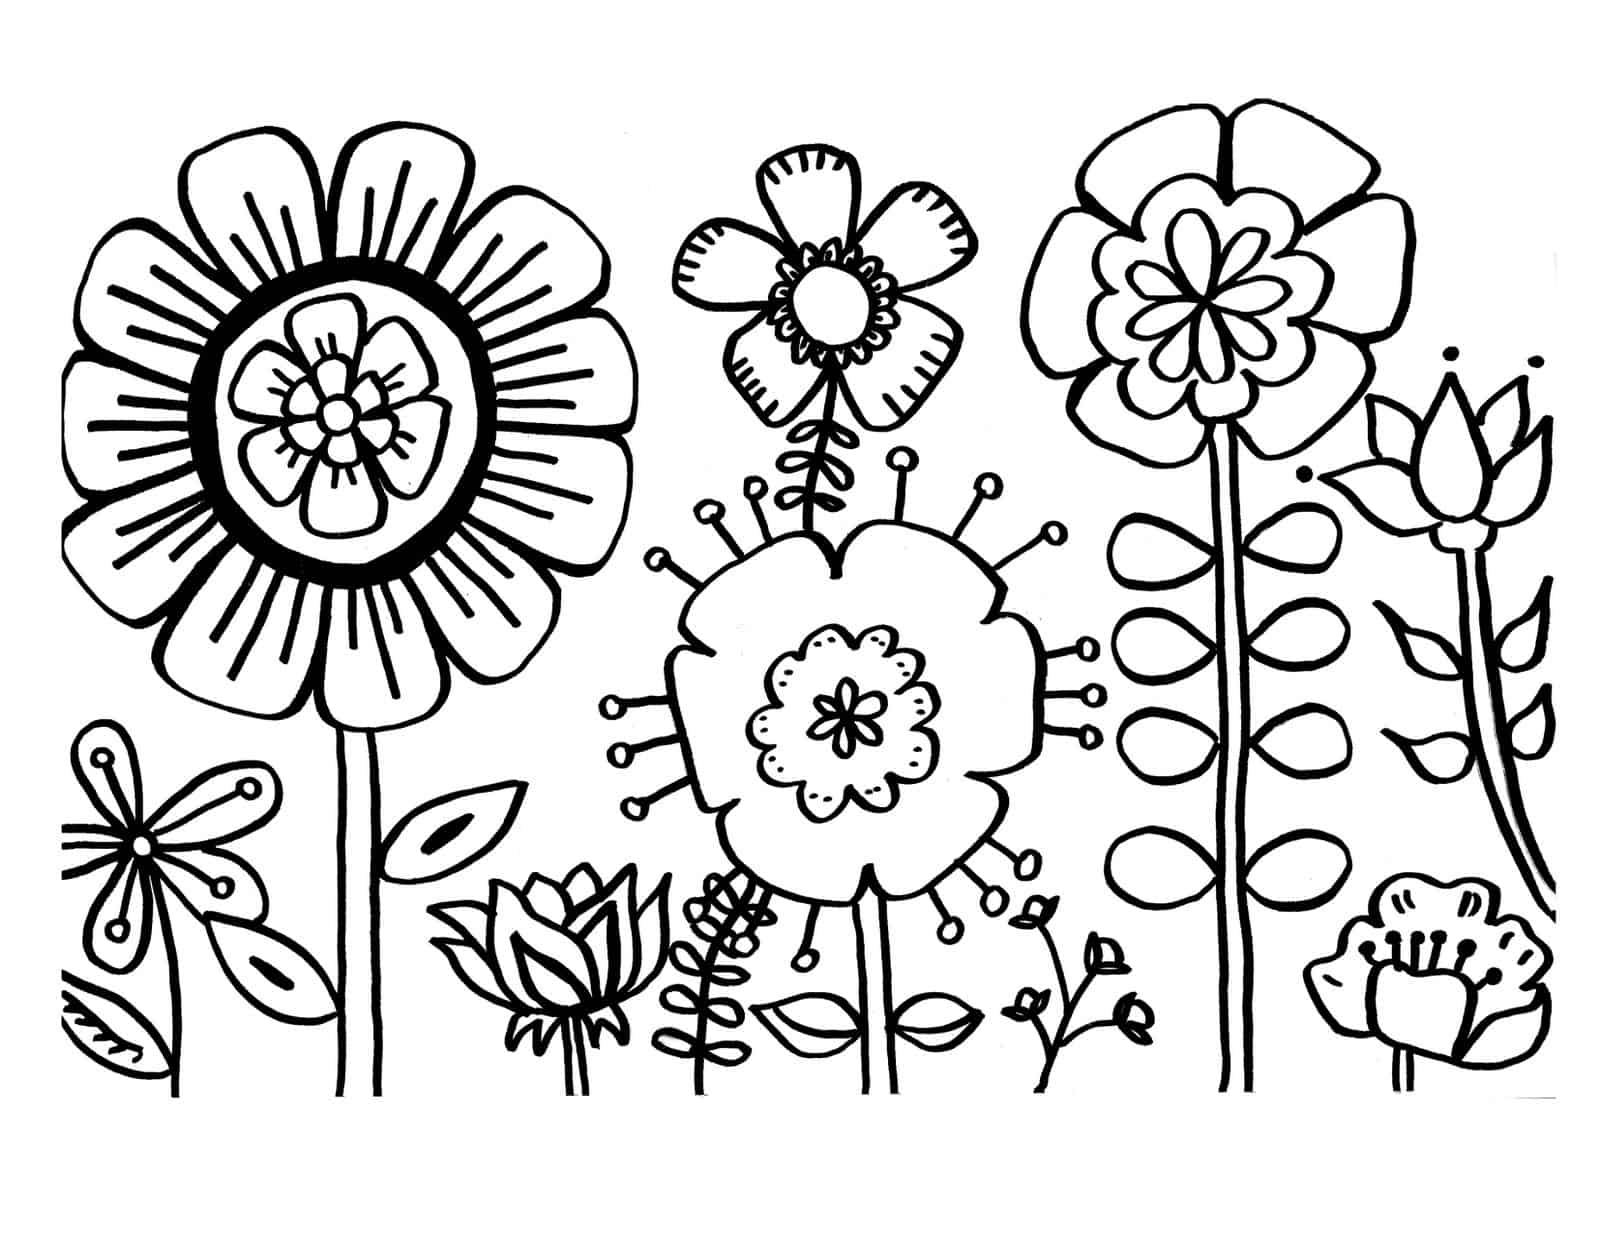 - 6 Free Flower Coloring Printables - Diy Thought